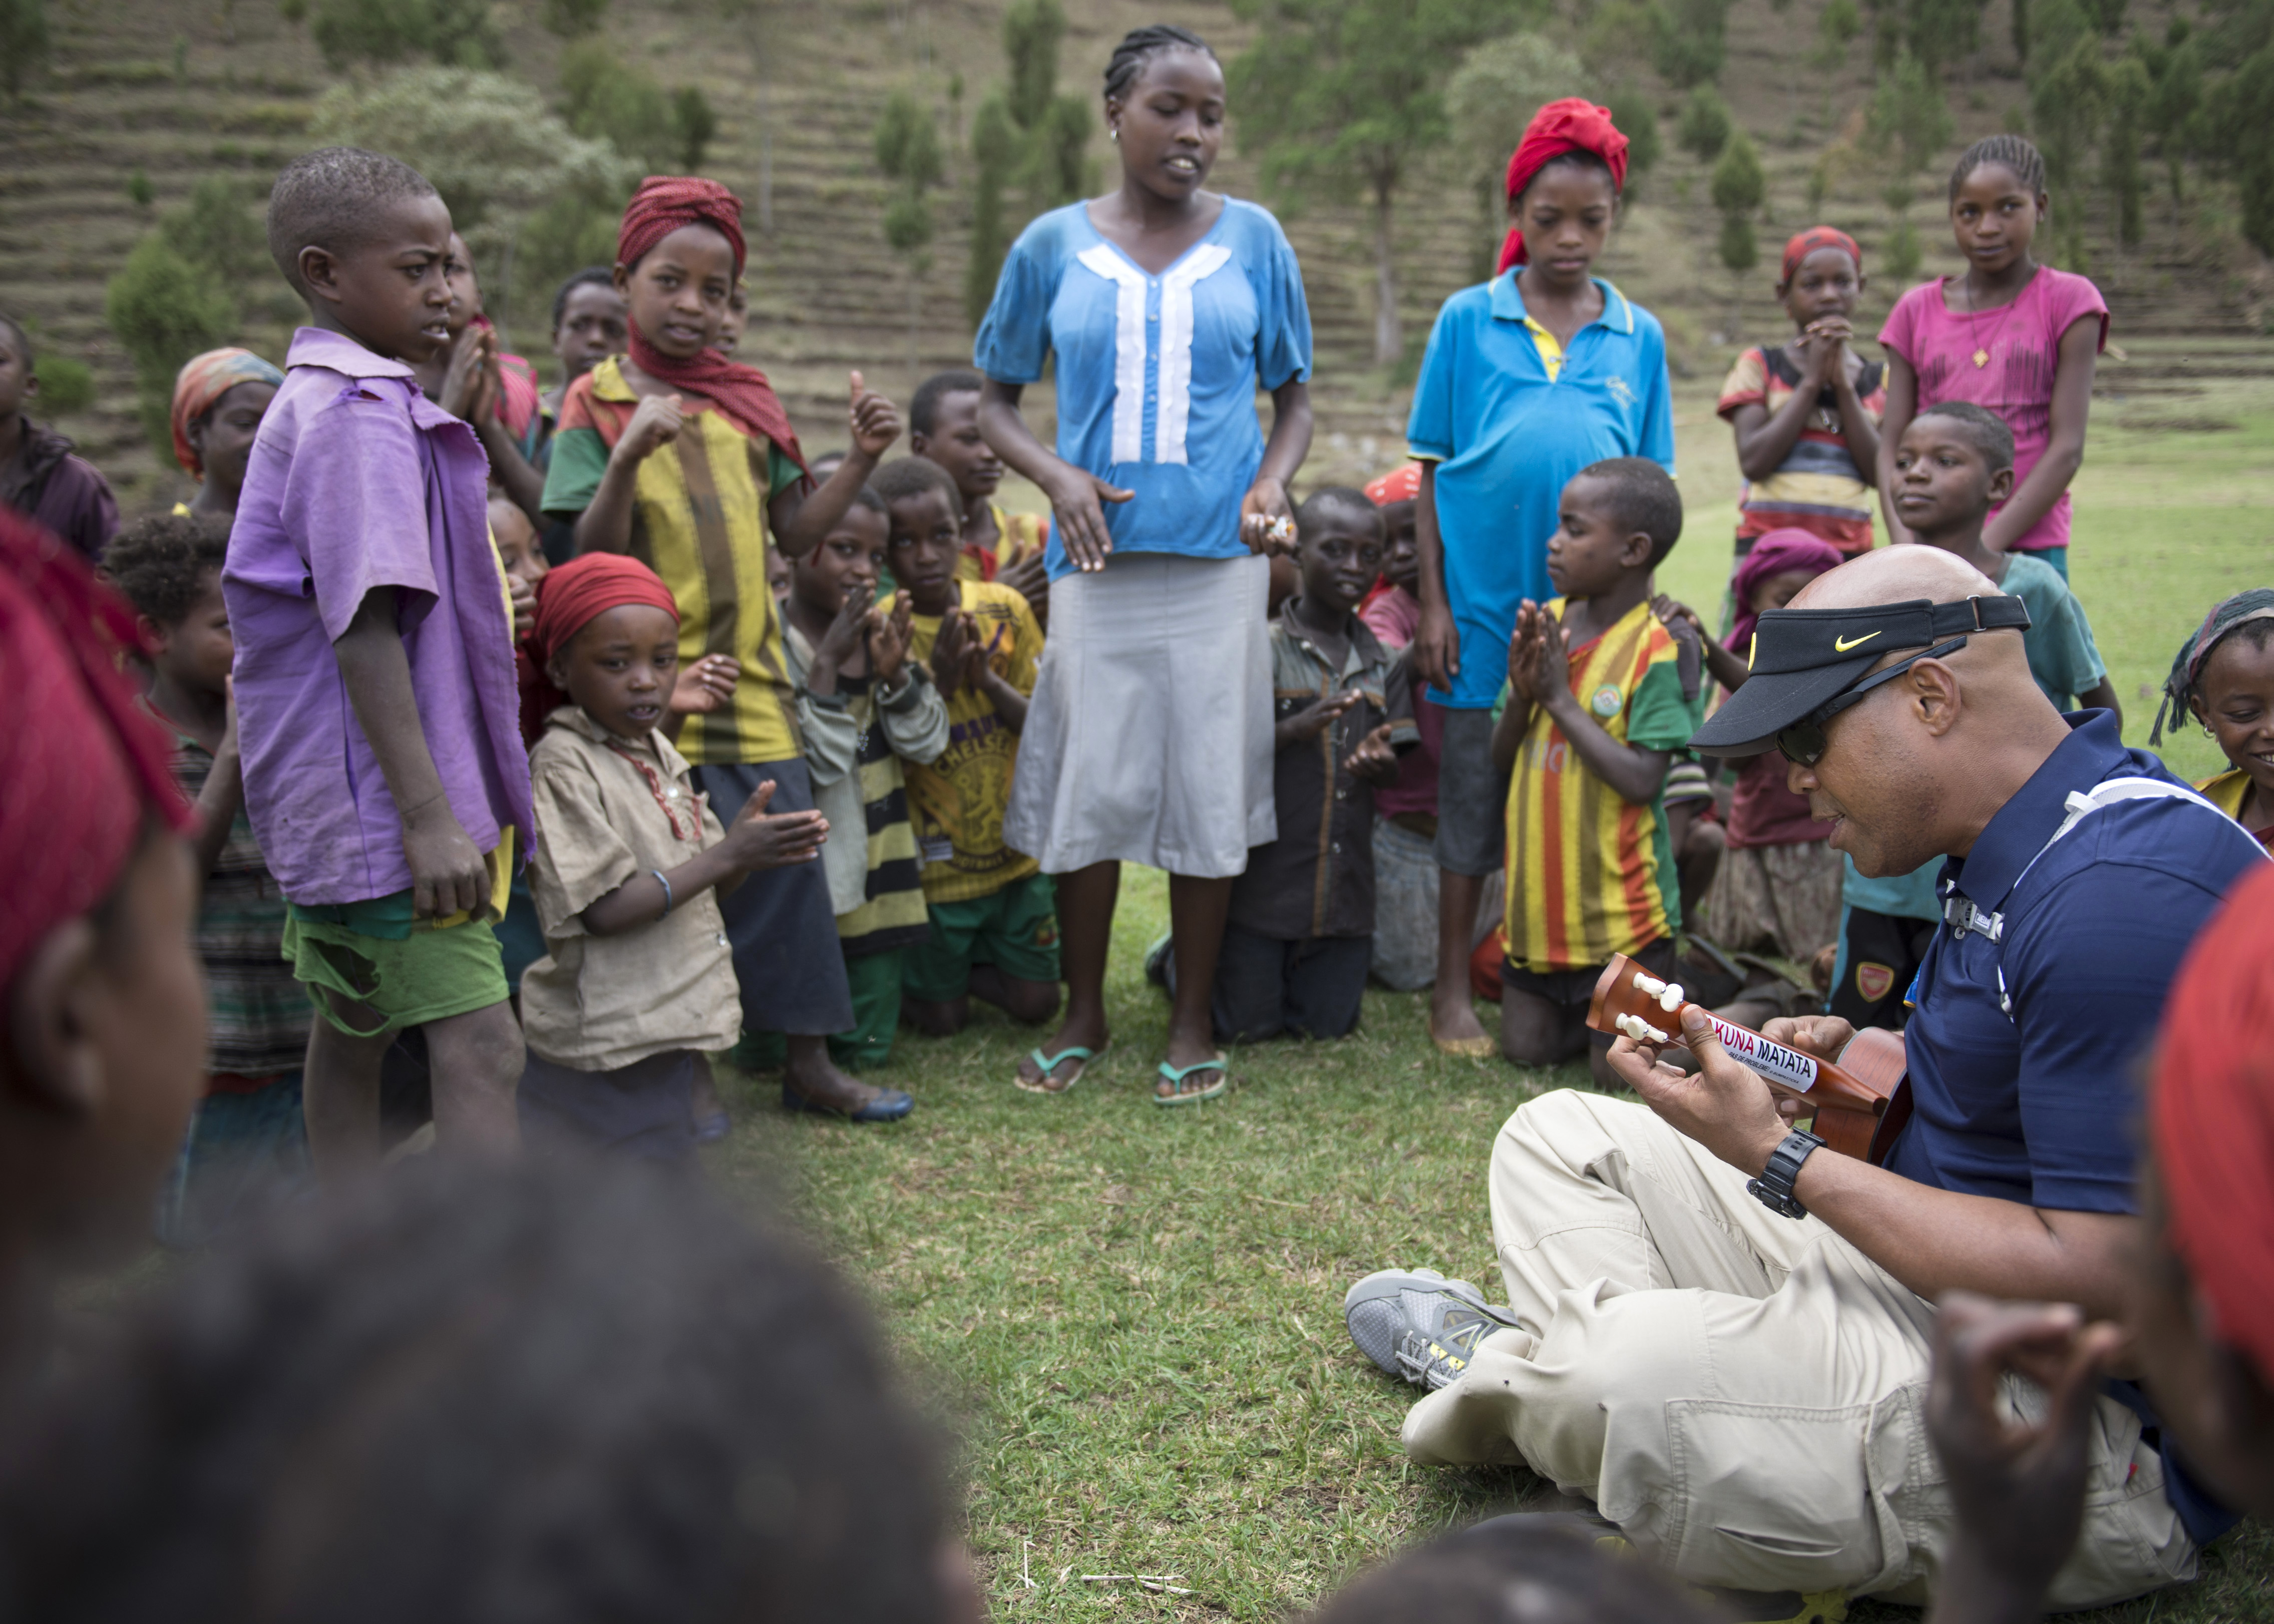 U.S. Army Chaplain (Maj.) Lawrence Allison, Combined Joint Task Force-Horn of Africa Religious Affairs deputy director, plays the ukulele to villagers in East Africa, Apr. 5, 2015.  Allison played several Hawaiian songs to entertain and boost the morale of the children. (U.S. Air Force photo by Staff Sgt. Kevin Iinuma)